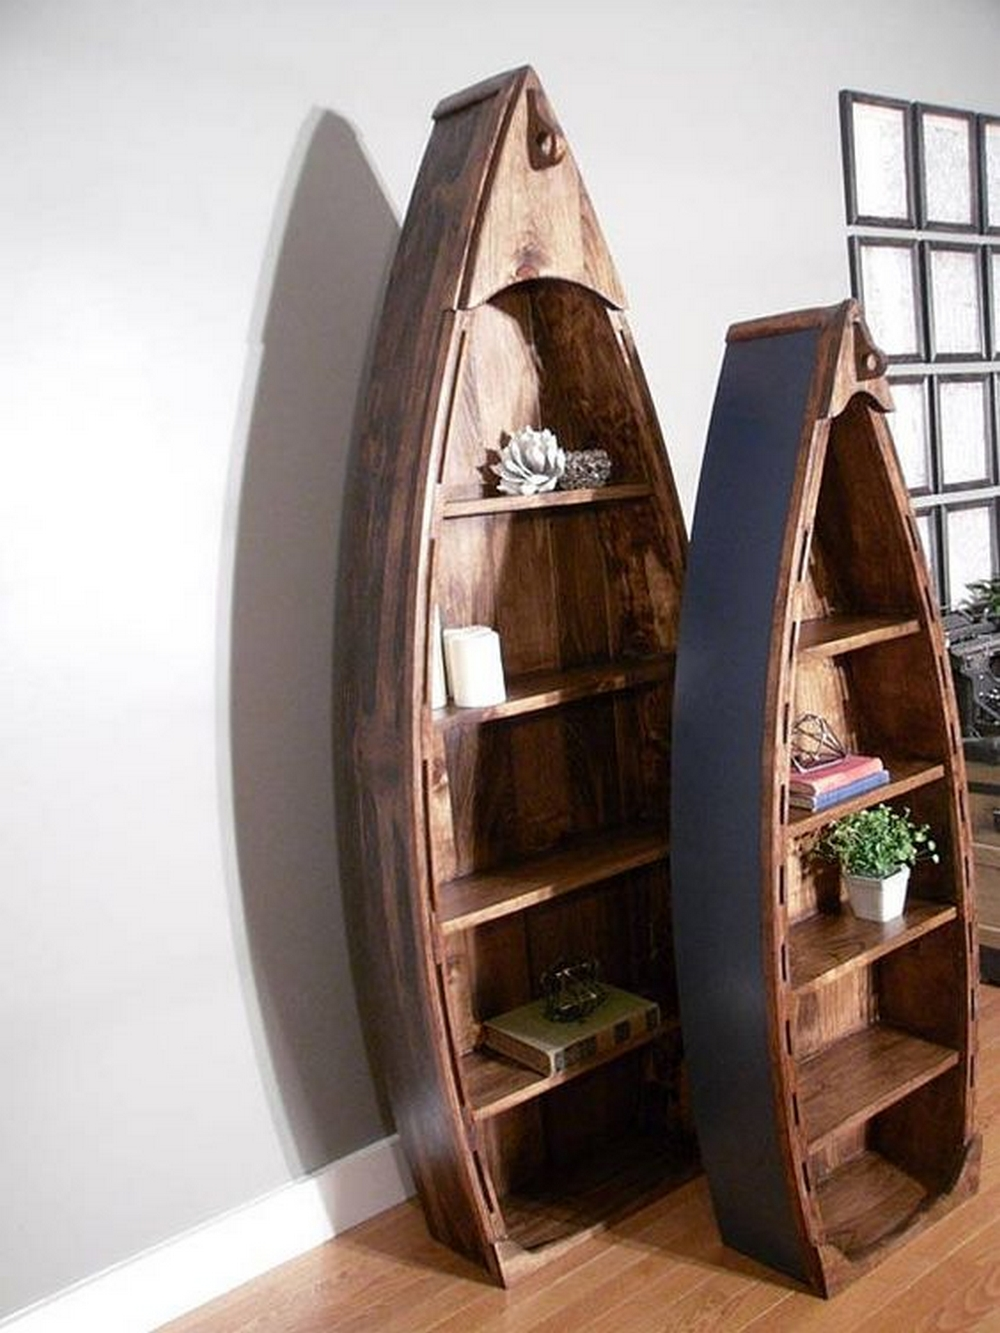 A boat bookshelf will surely be a standout piece in any room.